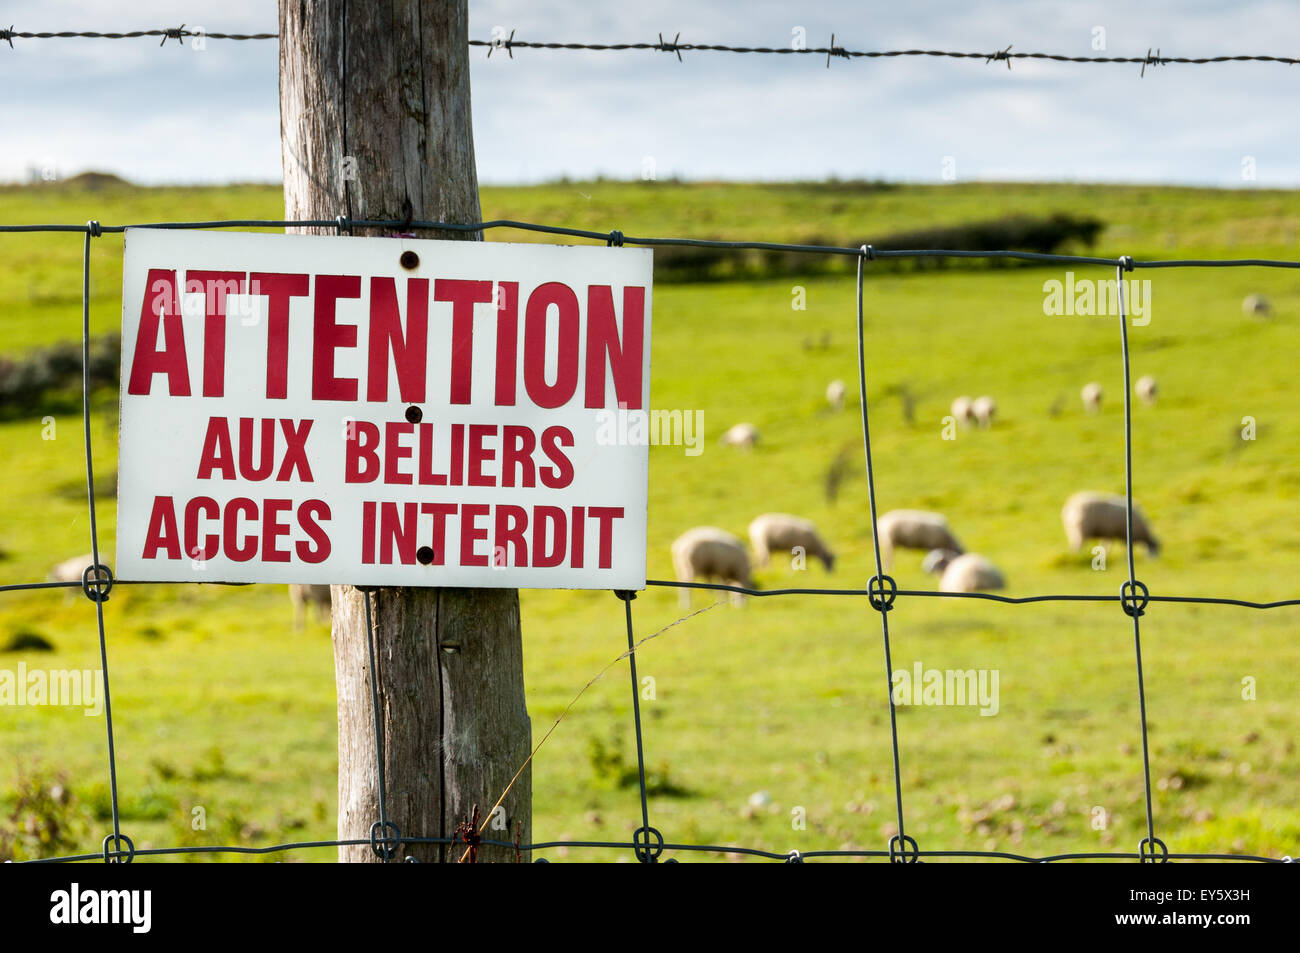 Ban sign 'Be careful to aries' - Stock Image